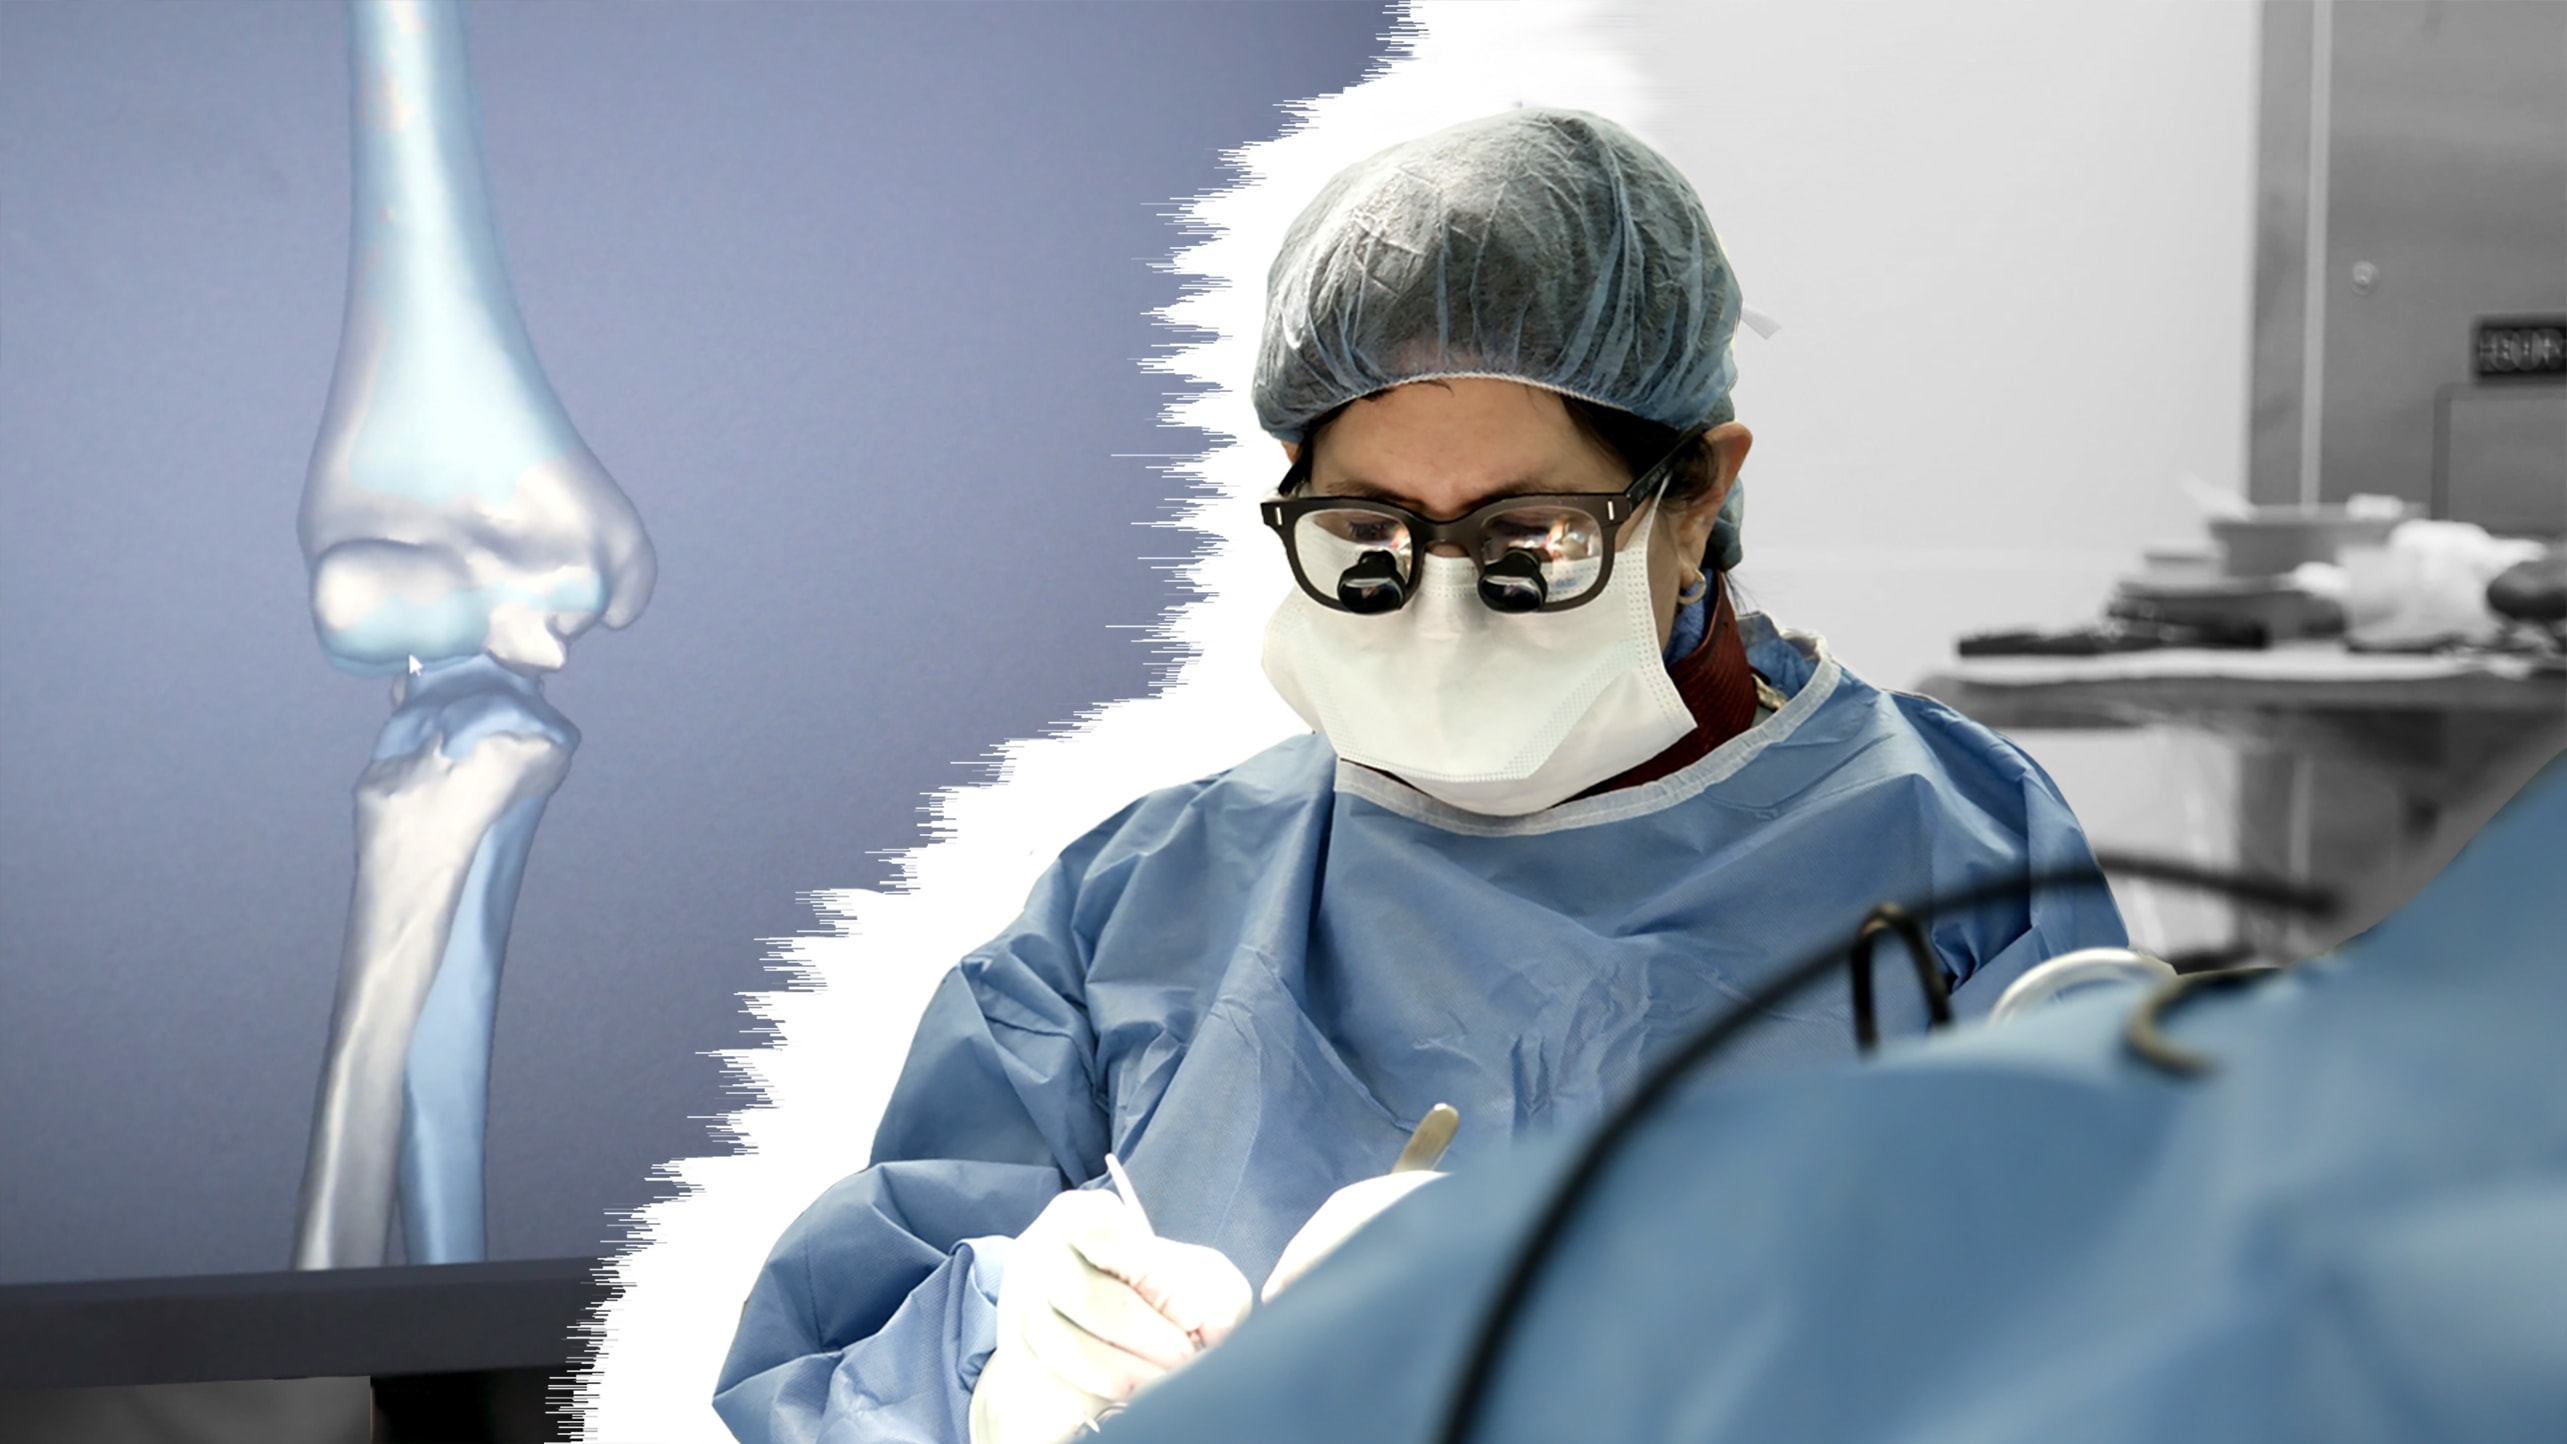 A doctor operates on a patient in front of a 3D rendering of the patient's bone.